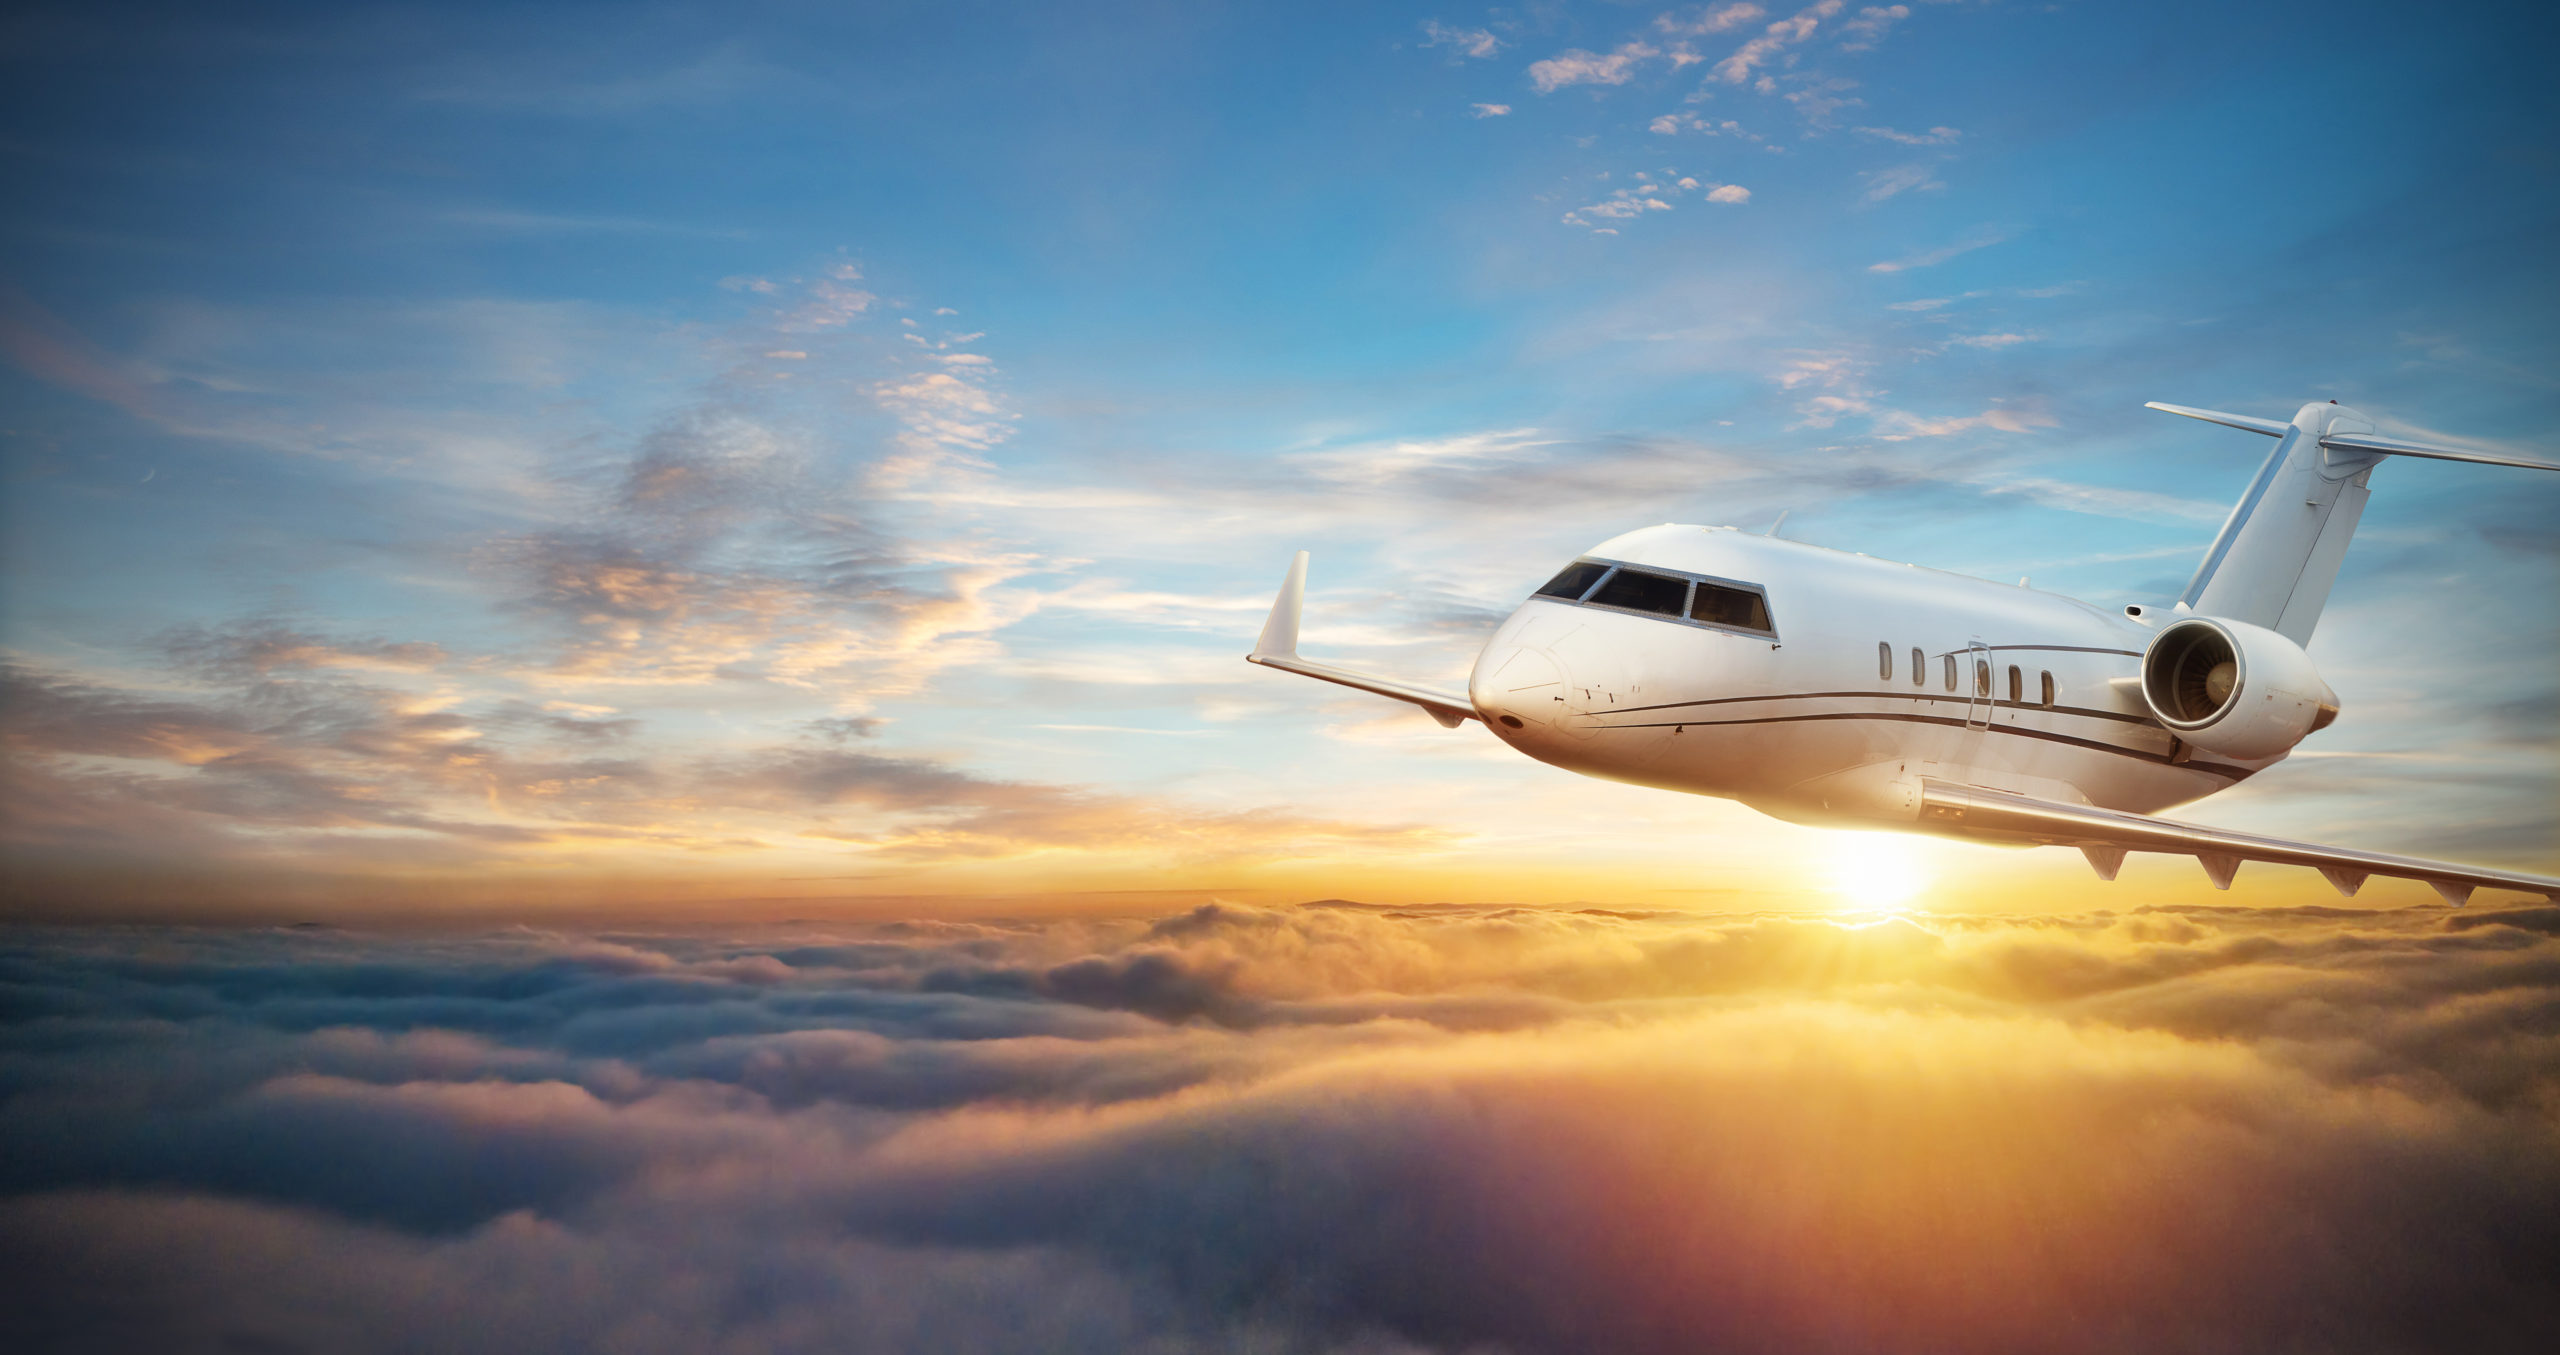 Industry Consolidation Reduces Fragmentation in Private Aviation Industry